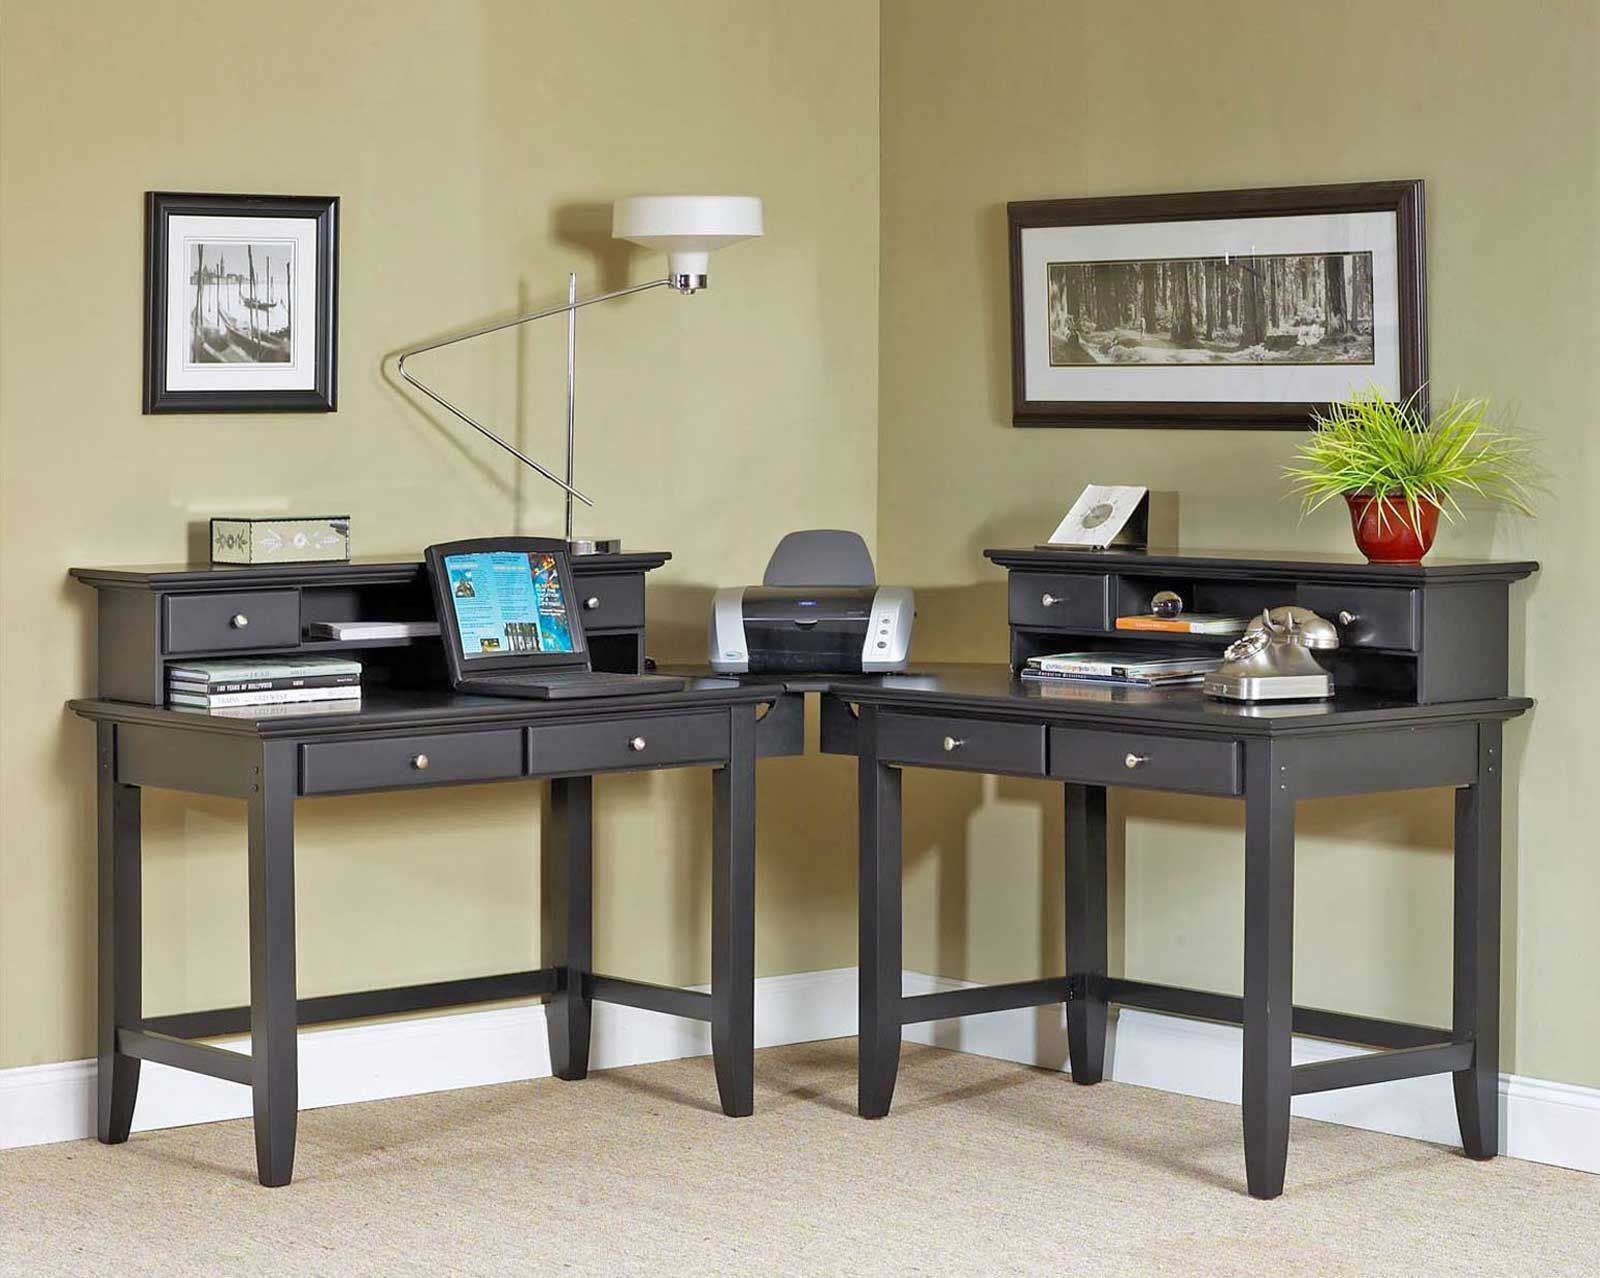 Home Office Furniture West Palm Beach Minimalist Decoration Brilliant 18 Best Office Images On Pinterest  Computer Desks Office Desks . Design Ideas